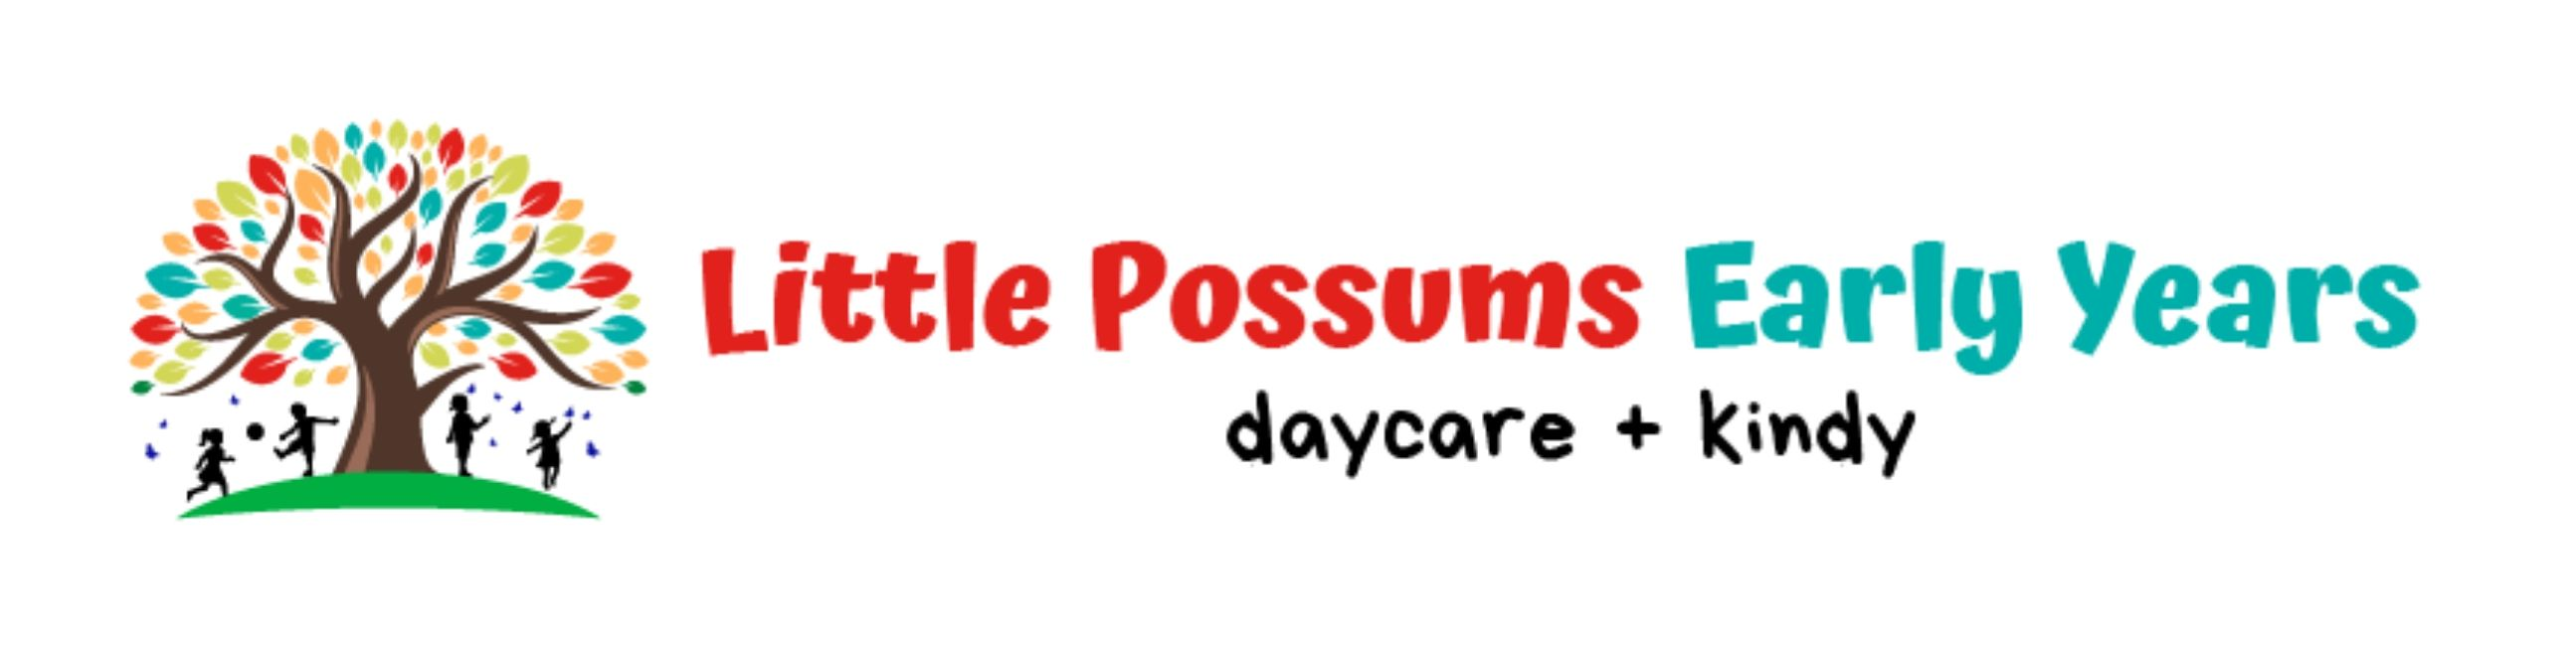 Little Possums Early Years